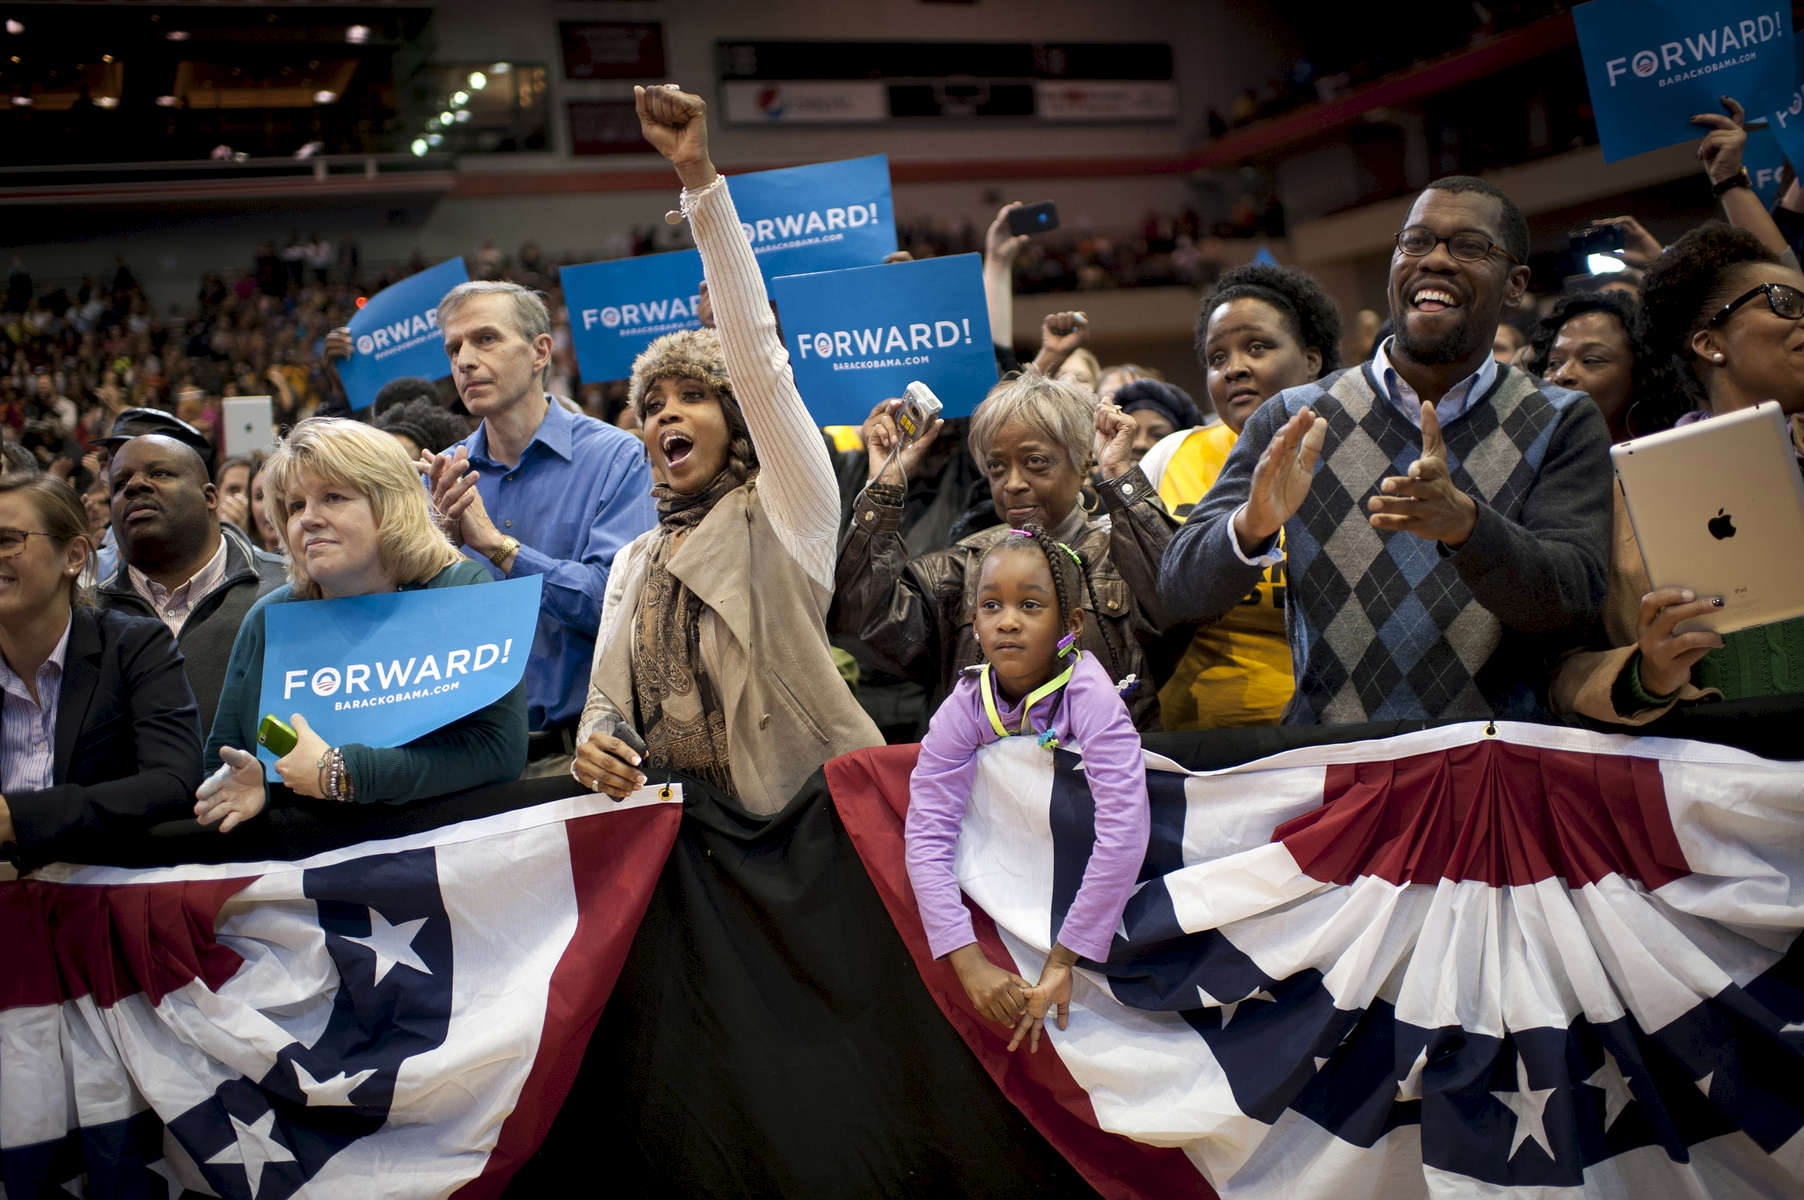 November 4, 2012 - Cincinnati, OH: Supporters cheer as President Barack Obama speaks at a rally in Cincinnati a few days before the election.  (Scout Tufankjian for Obama for America/Polaris)